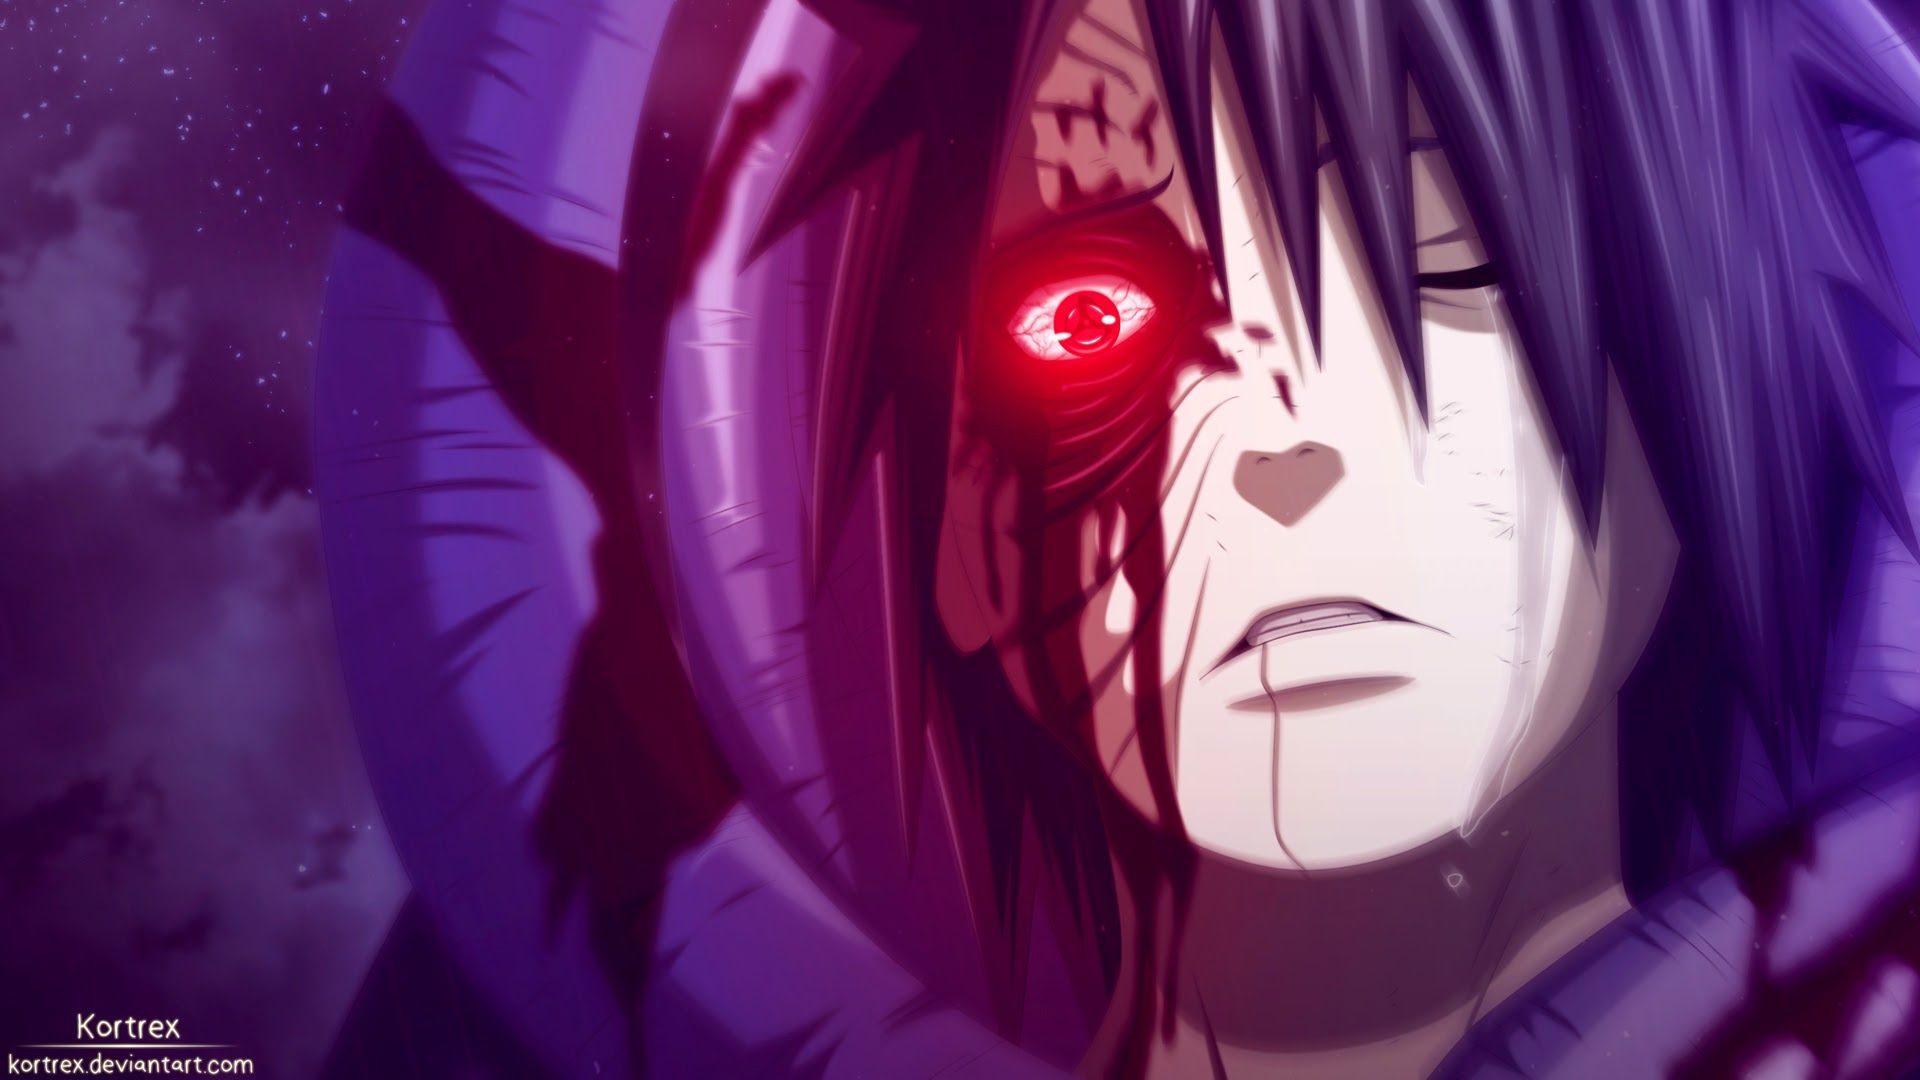 Obito Sharingan Eyes 7s Wallpaper Hd Tatuagem Do Naruto